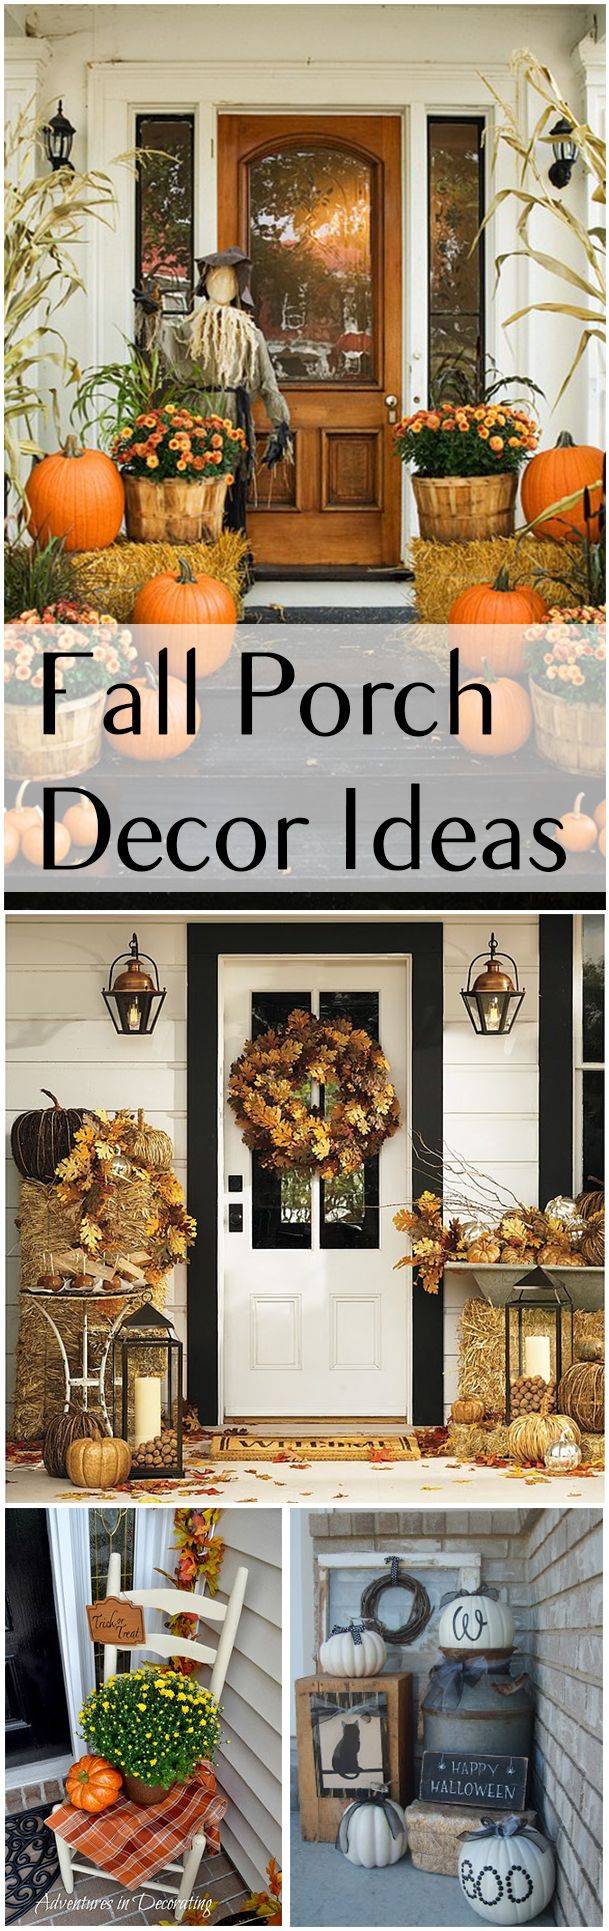 Doors pleasant fall decorating ideas for outside pinterest autumn - Fall Porch Decor Ideas